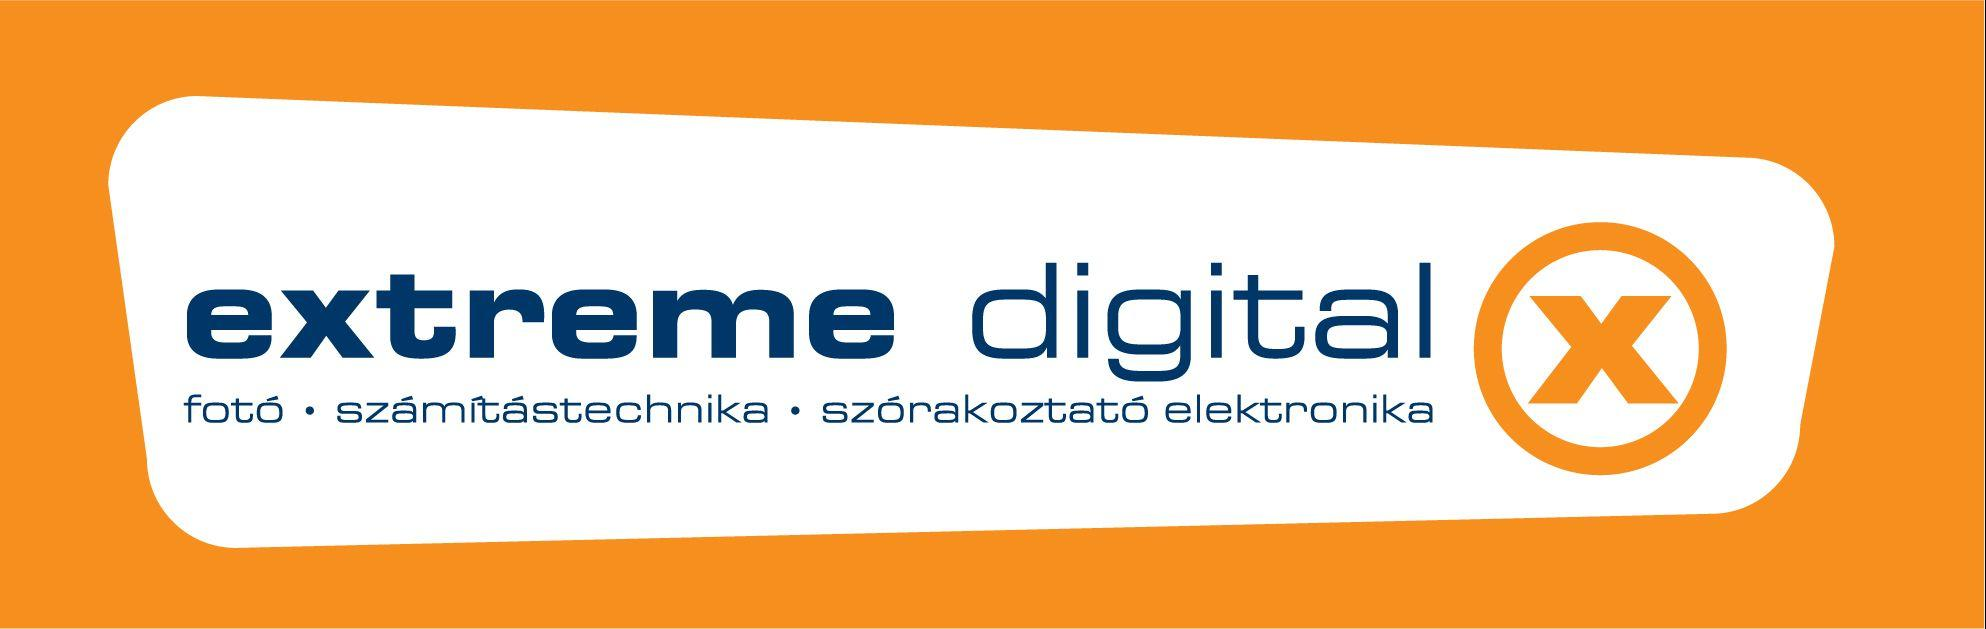 Competition Authority Fines Extreme Digital